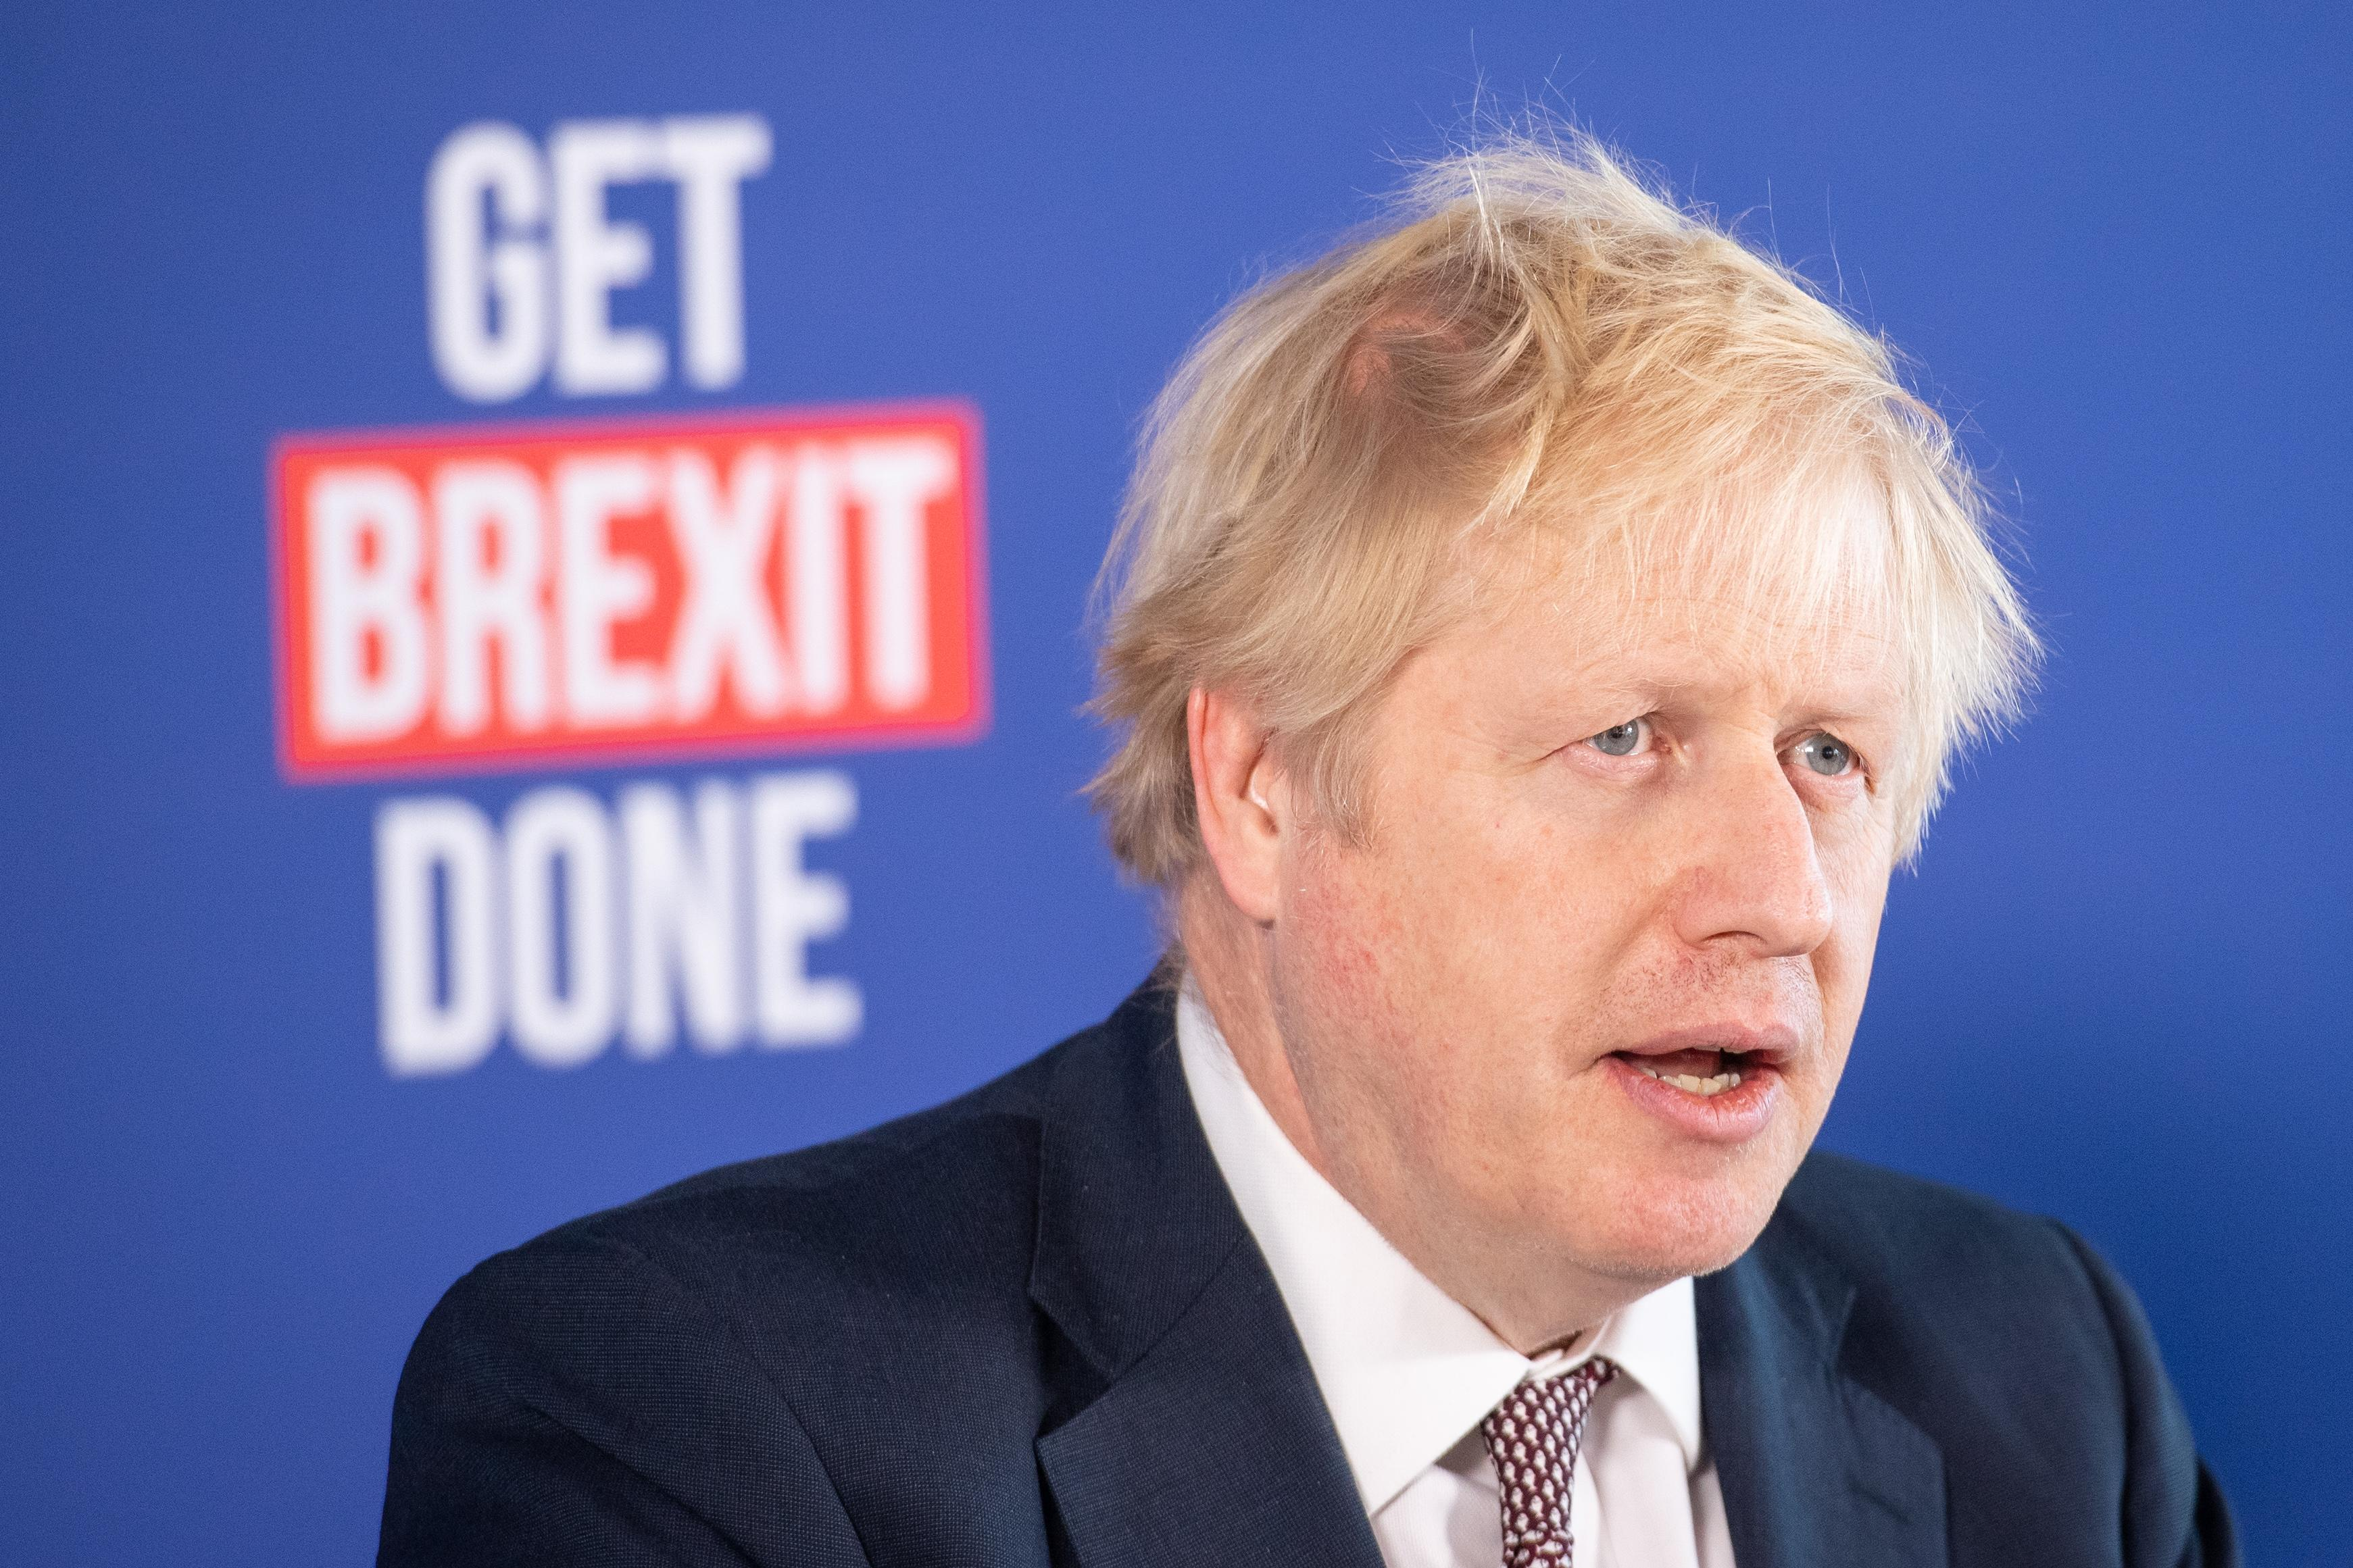 Prime Minister Boris Johnson speaking at a press conference in Millbank Tower, London, while on the General Election campaign trail.